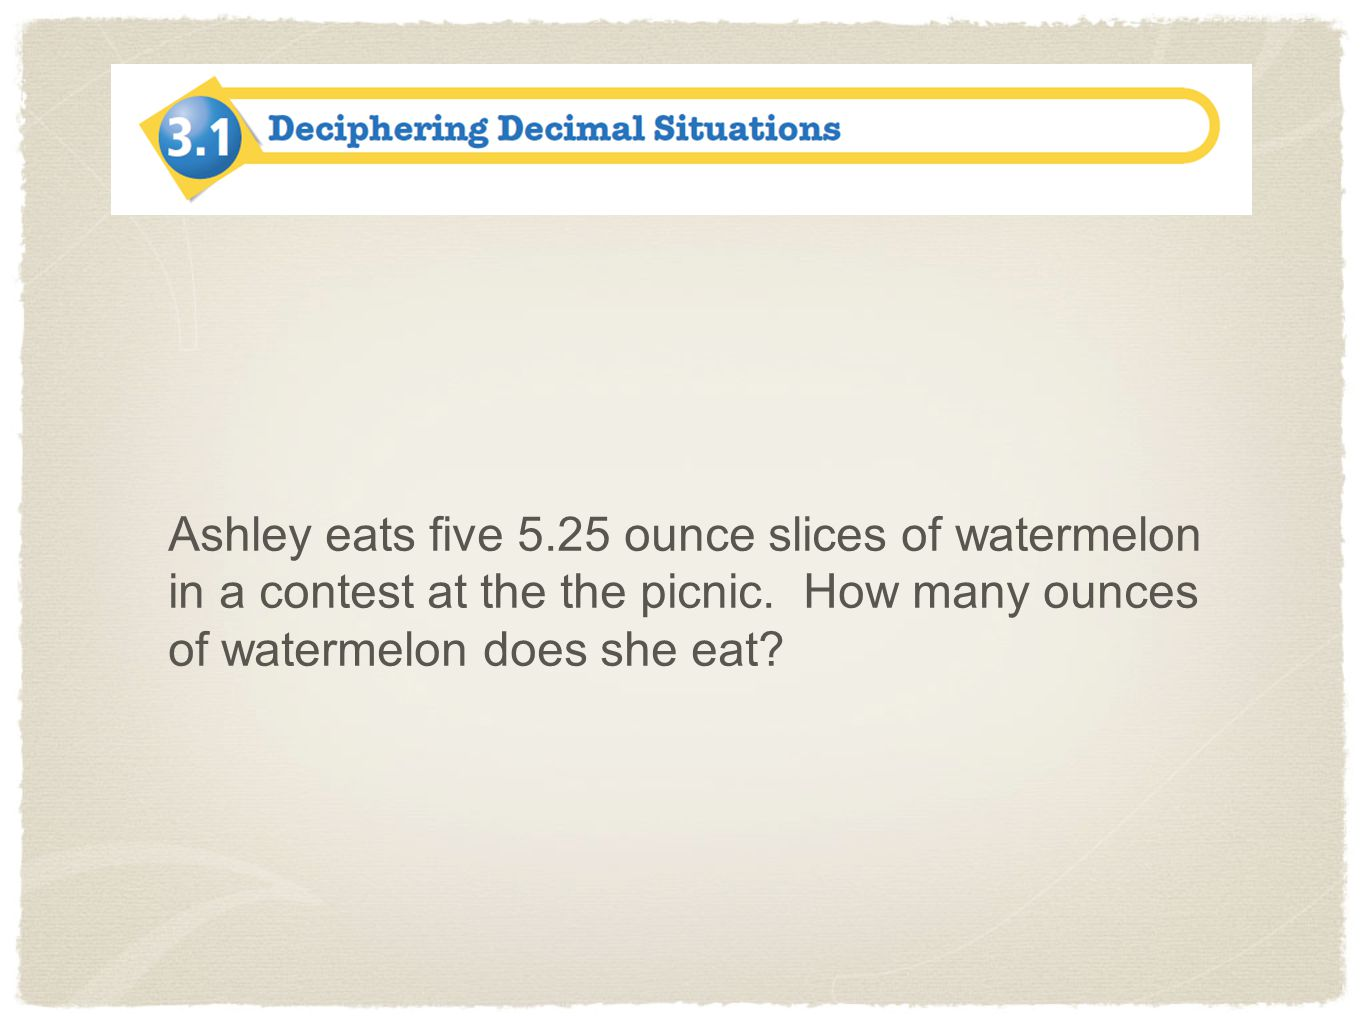 Ashley eats five 5.25 ounce slices of watermelon in a contest at the the picnic.